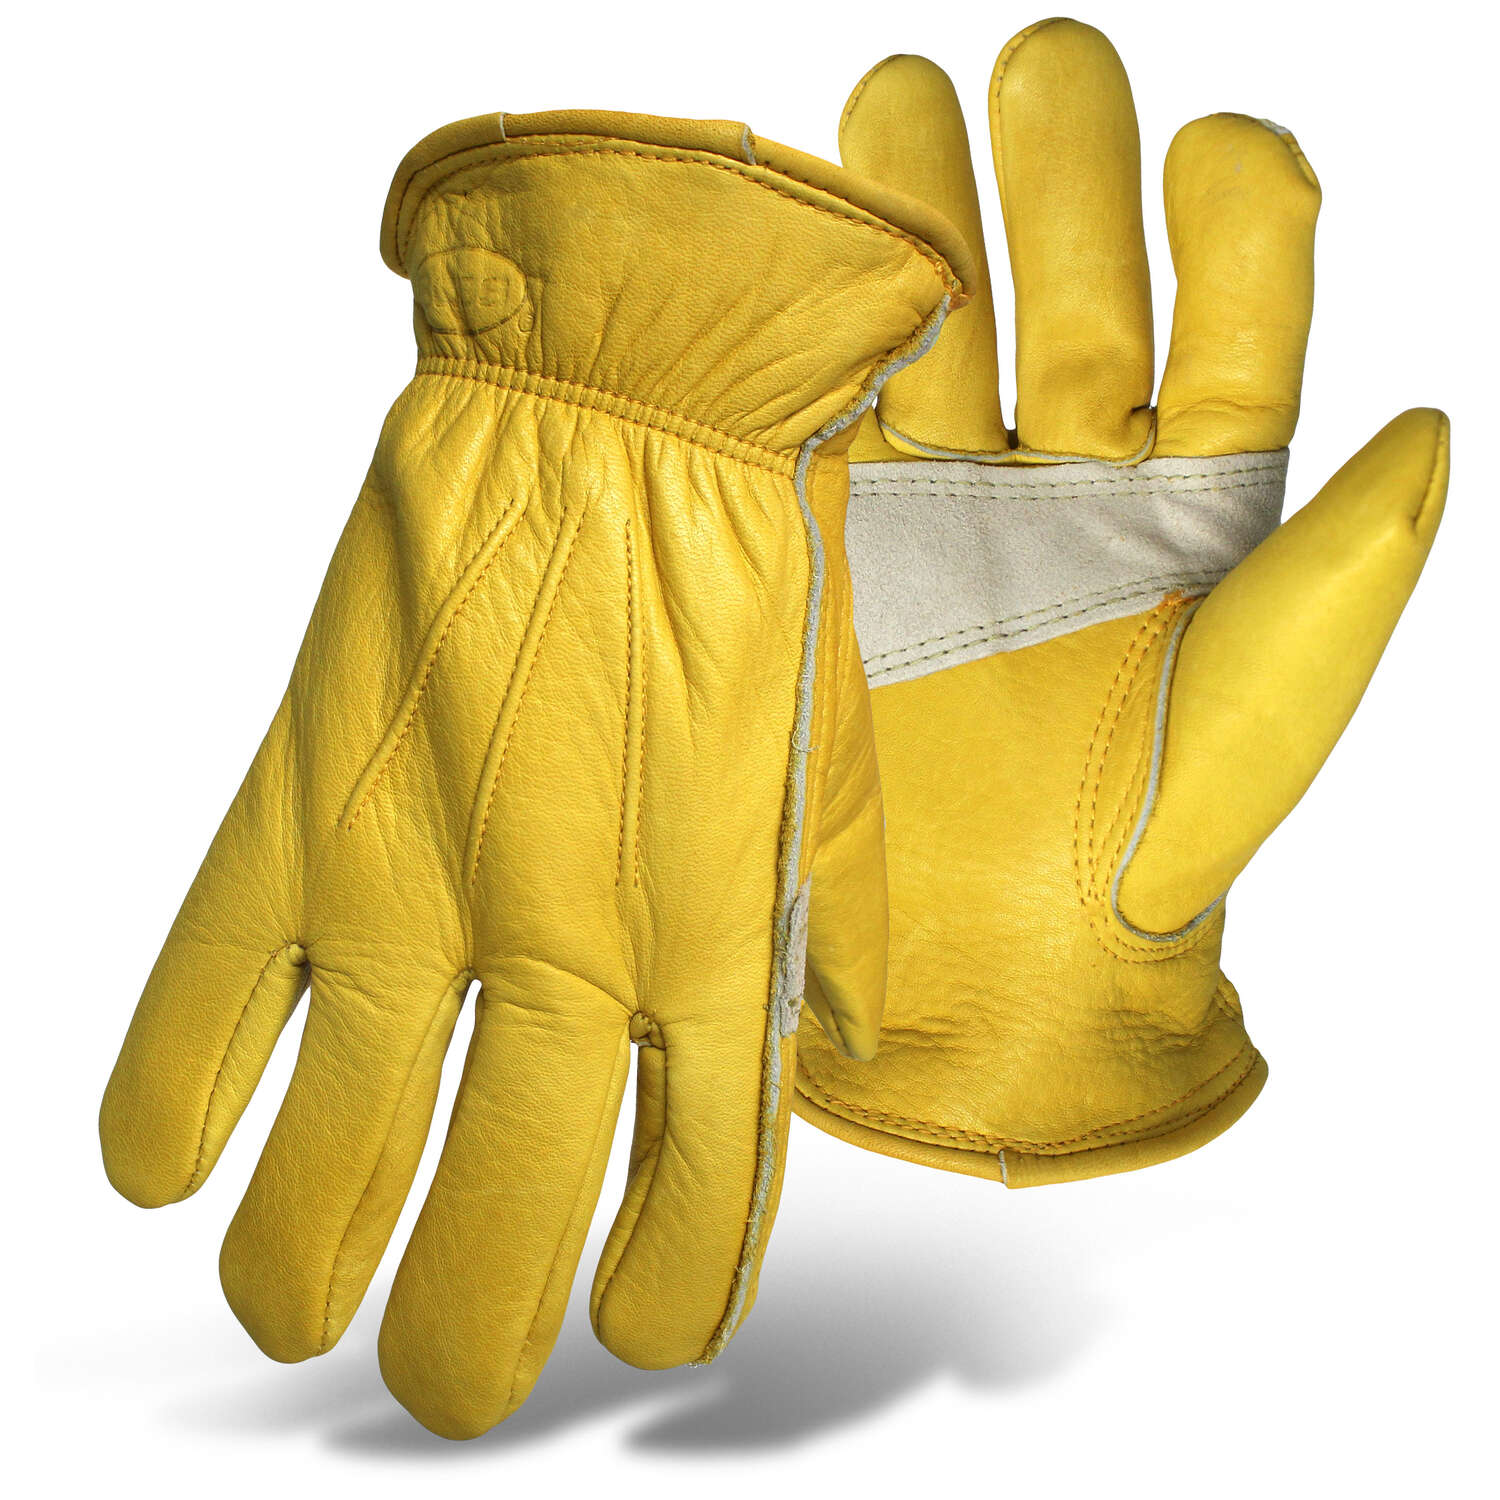 Boss  Therm  Men's  Indoor/Outdoor  Leather  Insulated  Cold Weather Gloves  Yellow  L  1 pair